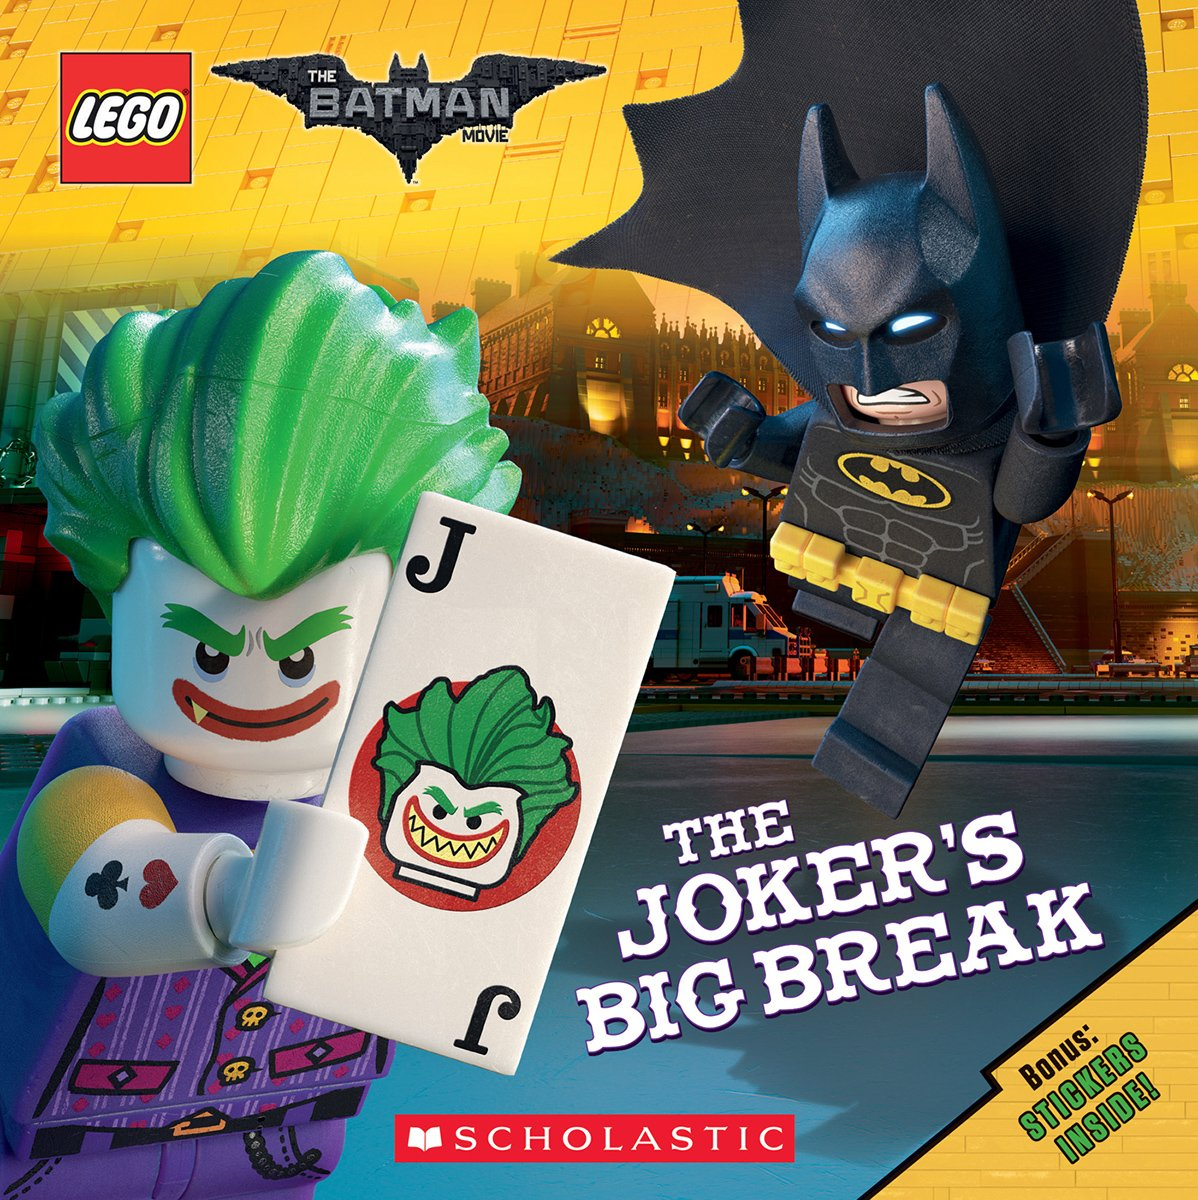 Amazon Com The Joker S Big Break The Lego Batman Movie 8x8 9781338112177 Petranek Michael Books